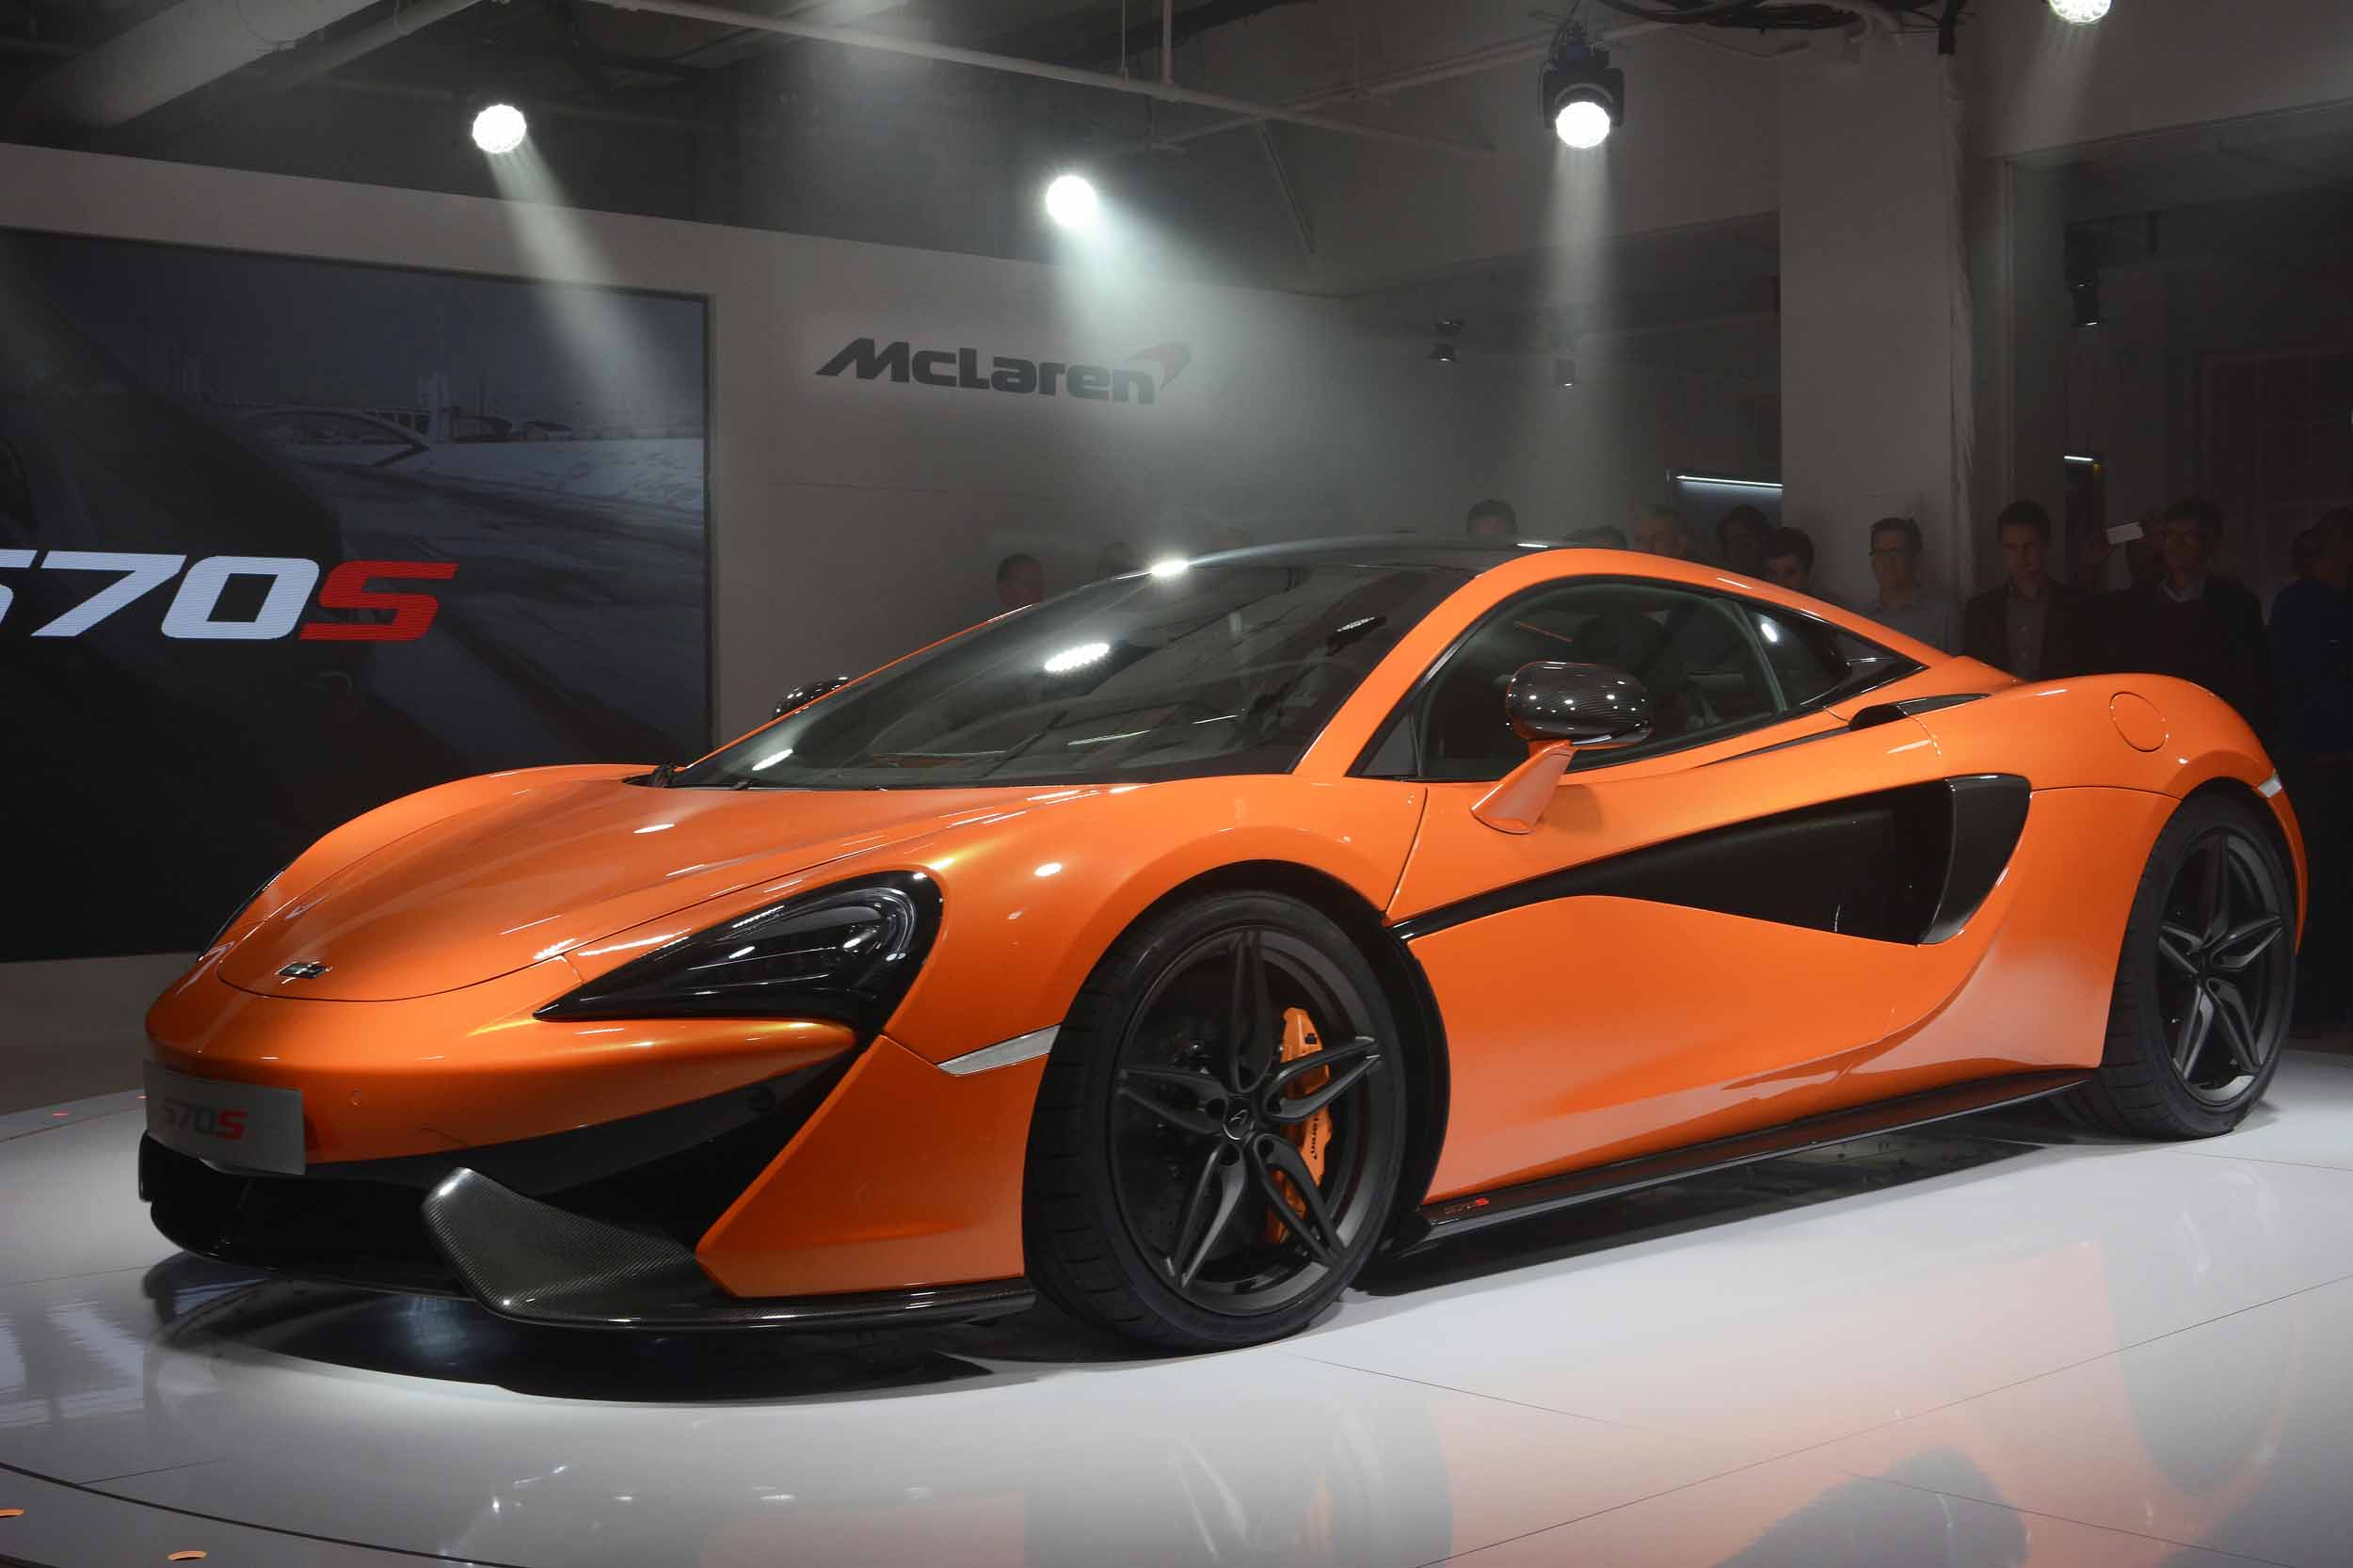 A mysterious Shooting Brake from McLaren will be introduced next year